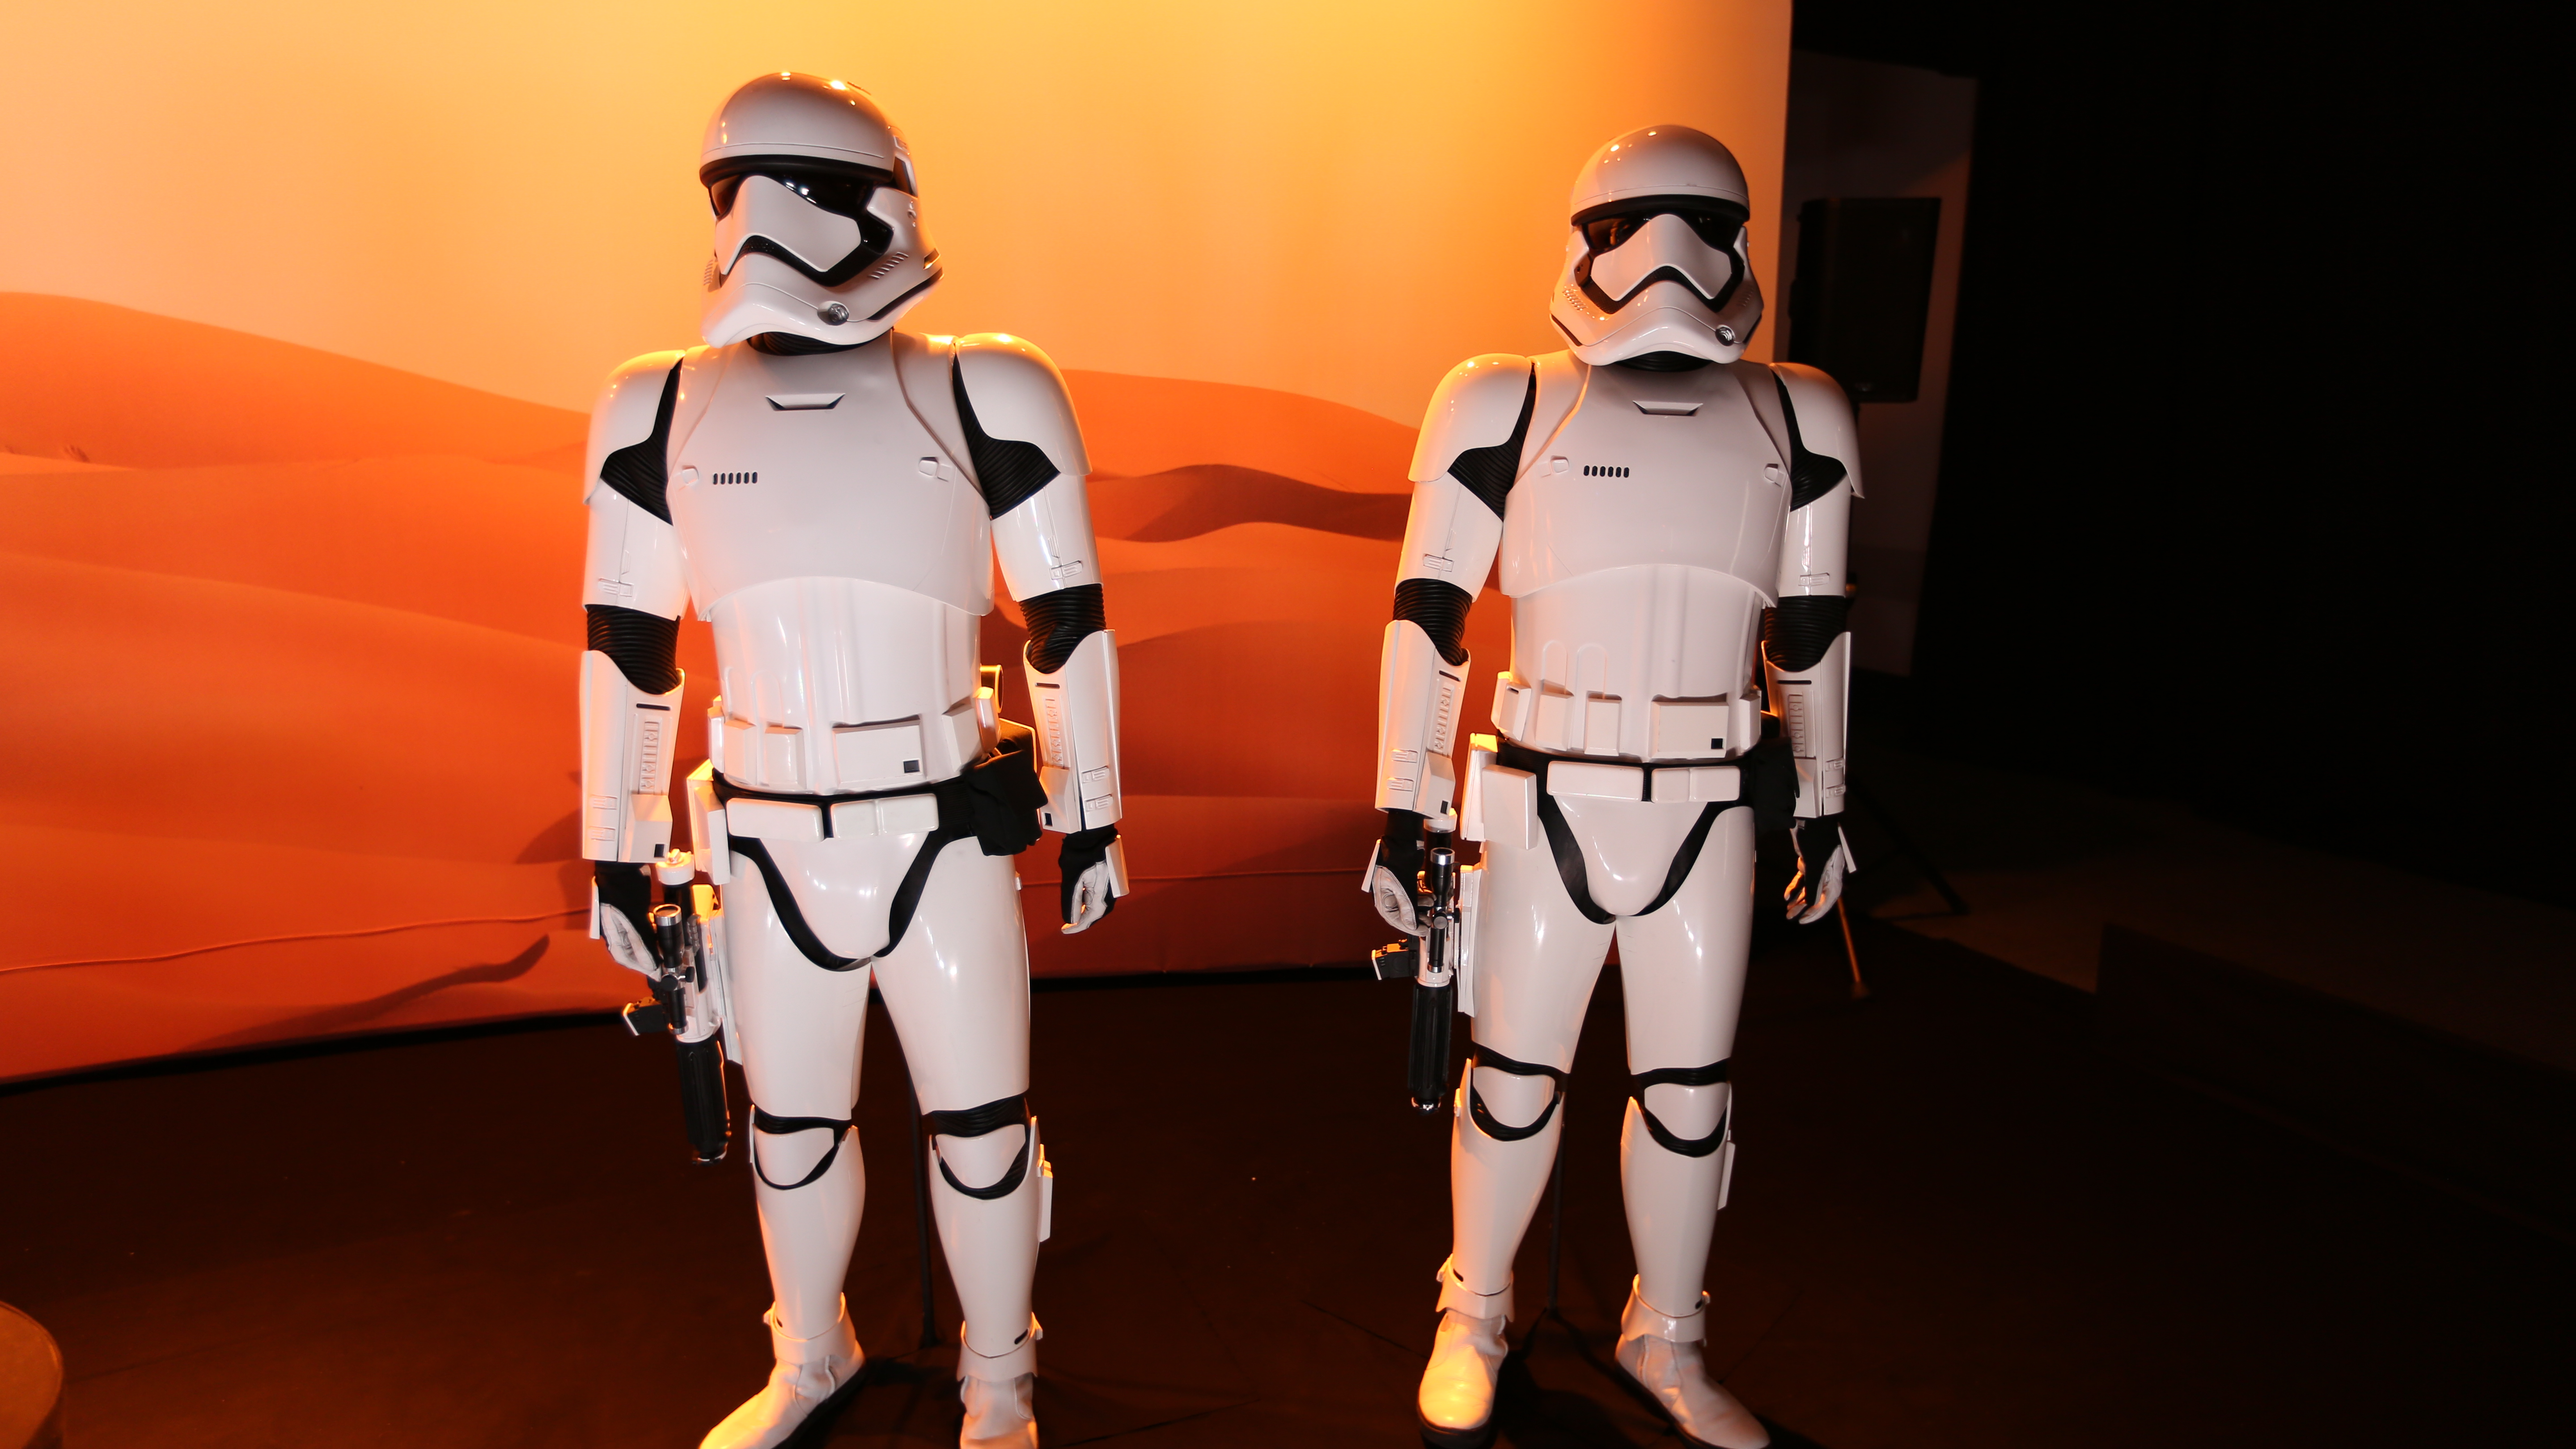 Star Wars 7 Costumes Props and Klyo Rens Lightsaber in High 5760x3240